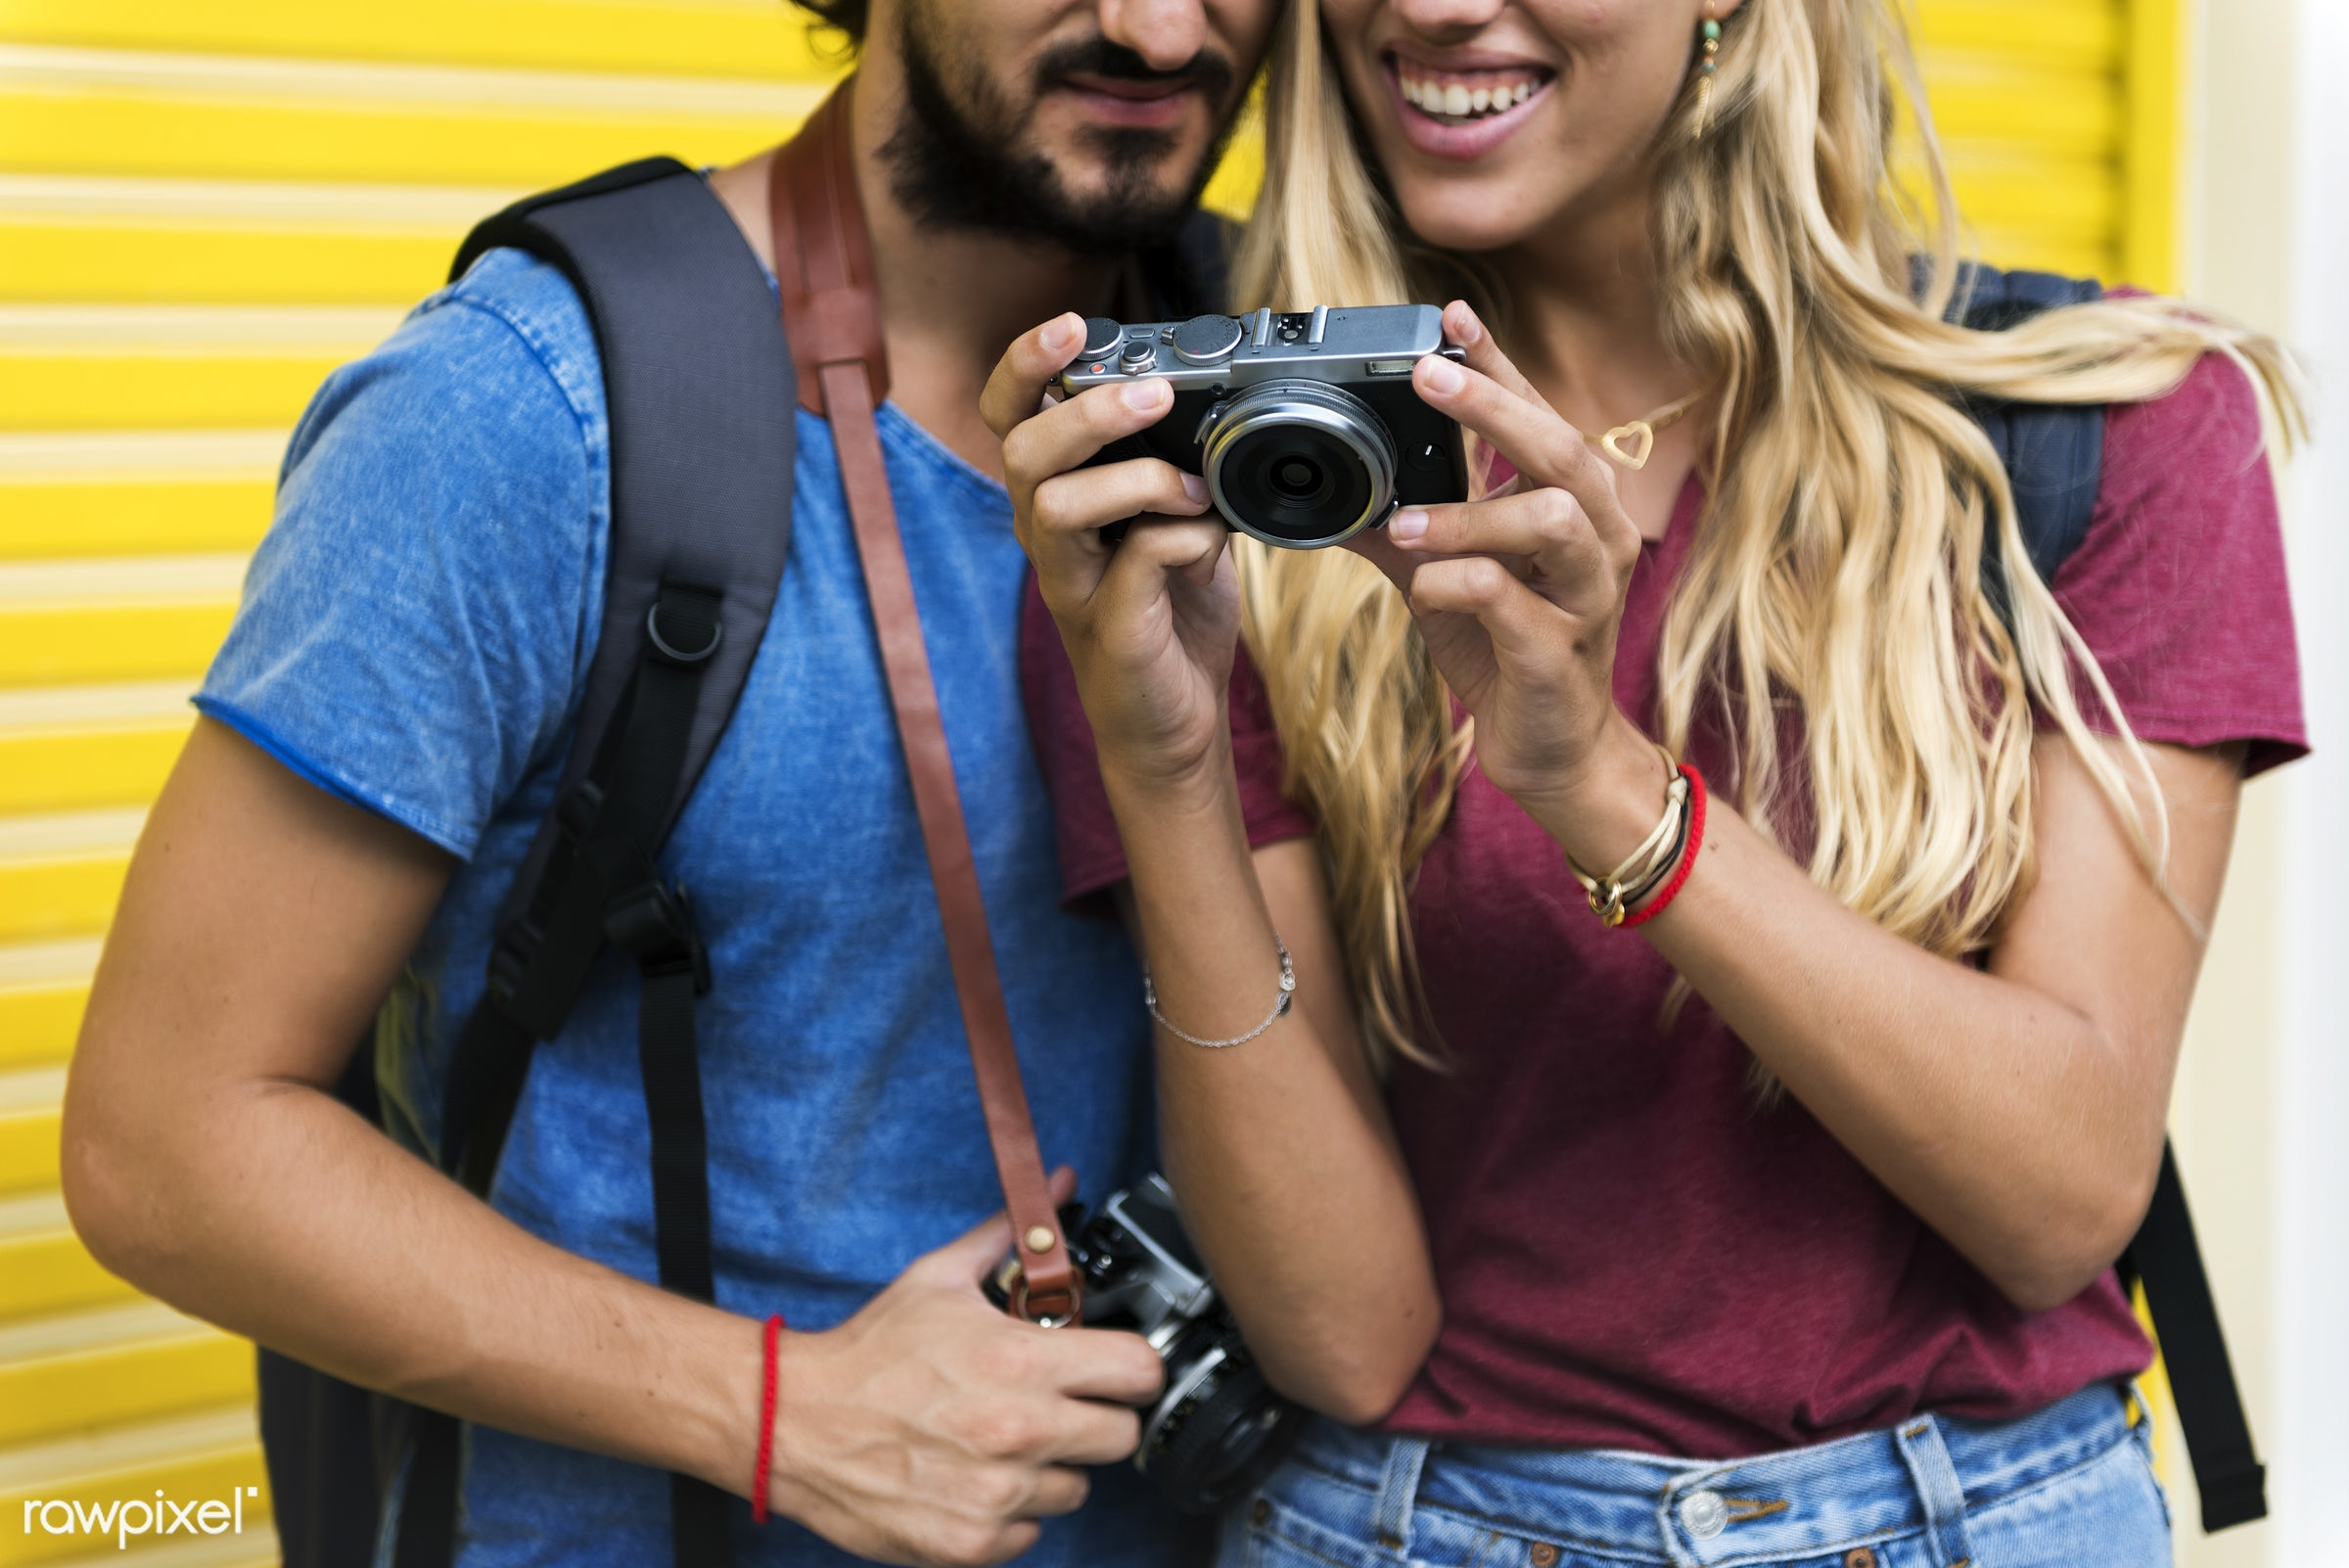 backpackers, pictures, travel, people, together, city, girl, woman, partner, couple, trip, man, romance, guy, male,...